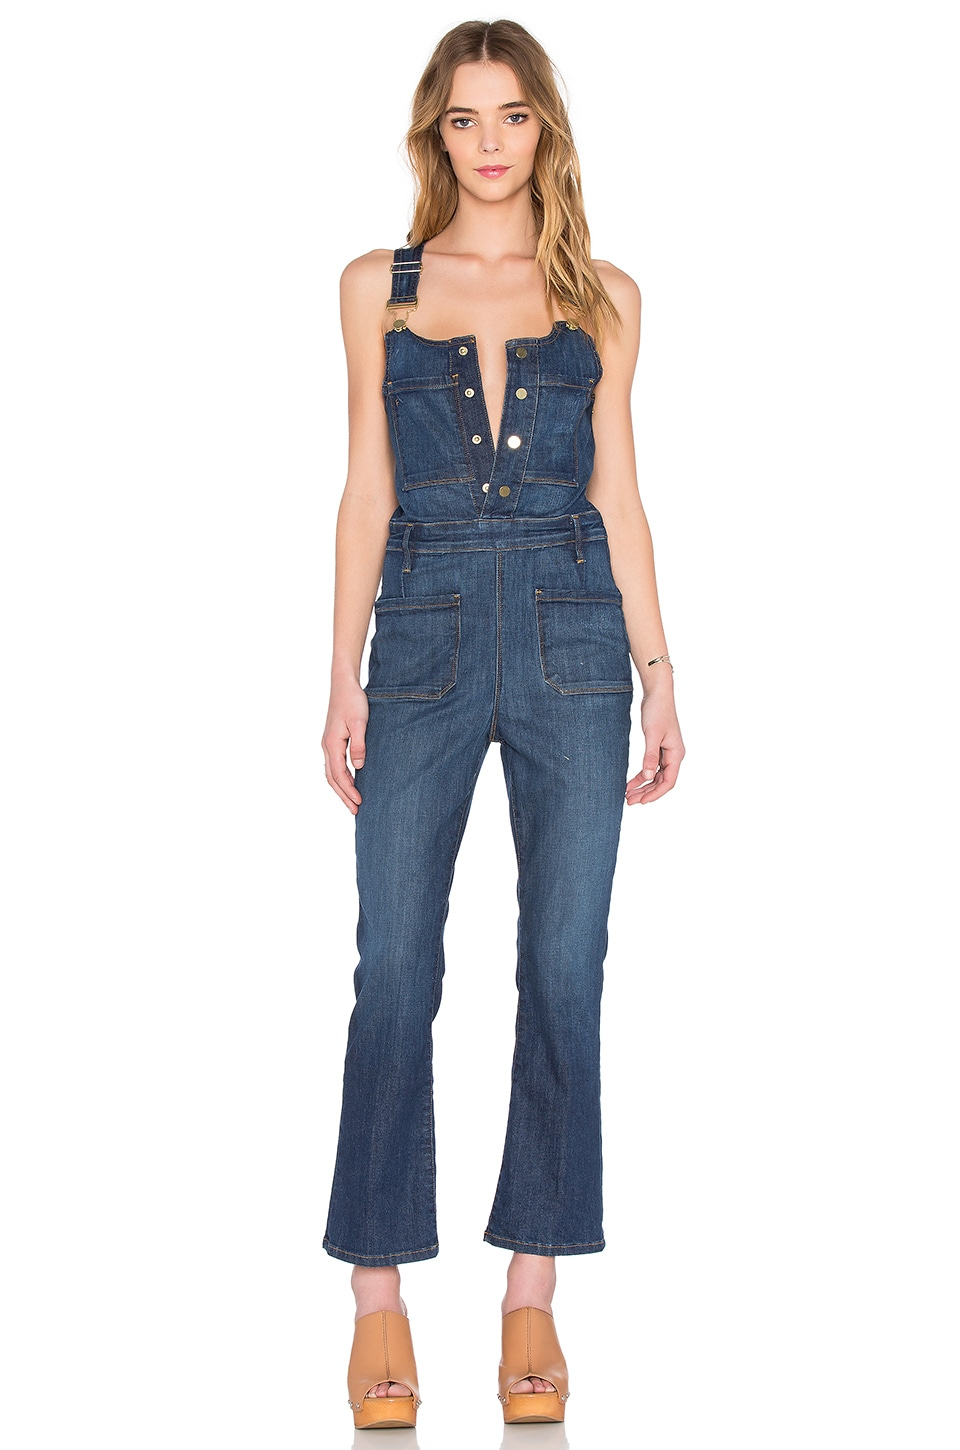 FRAME Denim Le High Crop Overall in Radnor